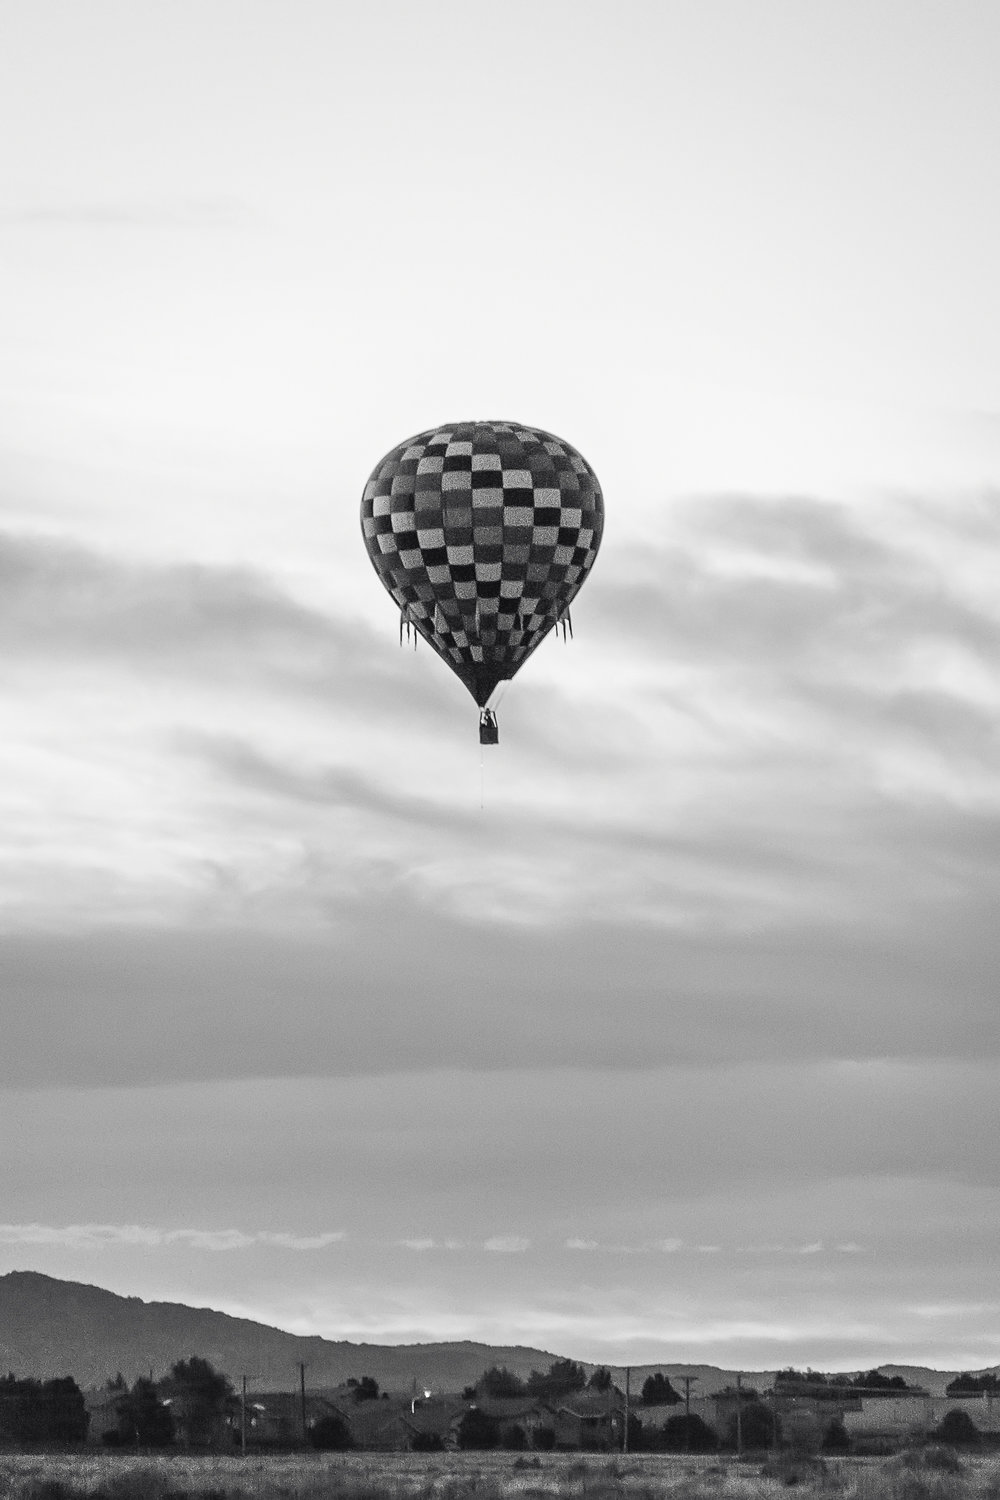 Black and White Balloon Photo, Albuquerque Photographer, Albuquerque International Balloon Fiesta, Hot Air Balloon